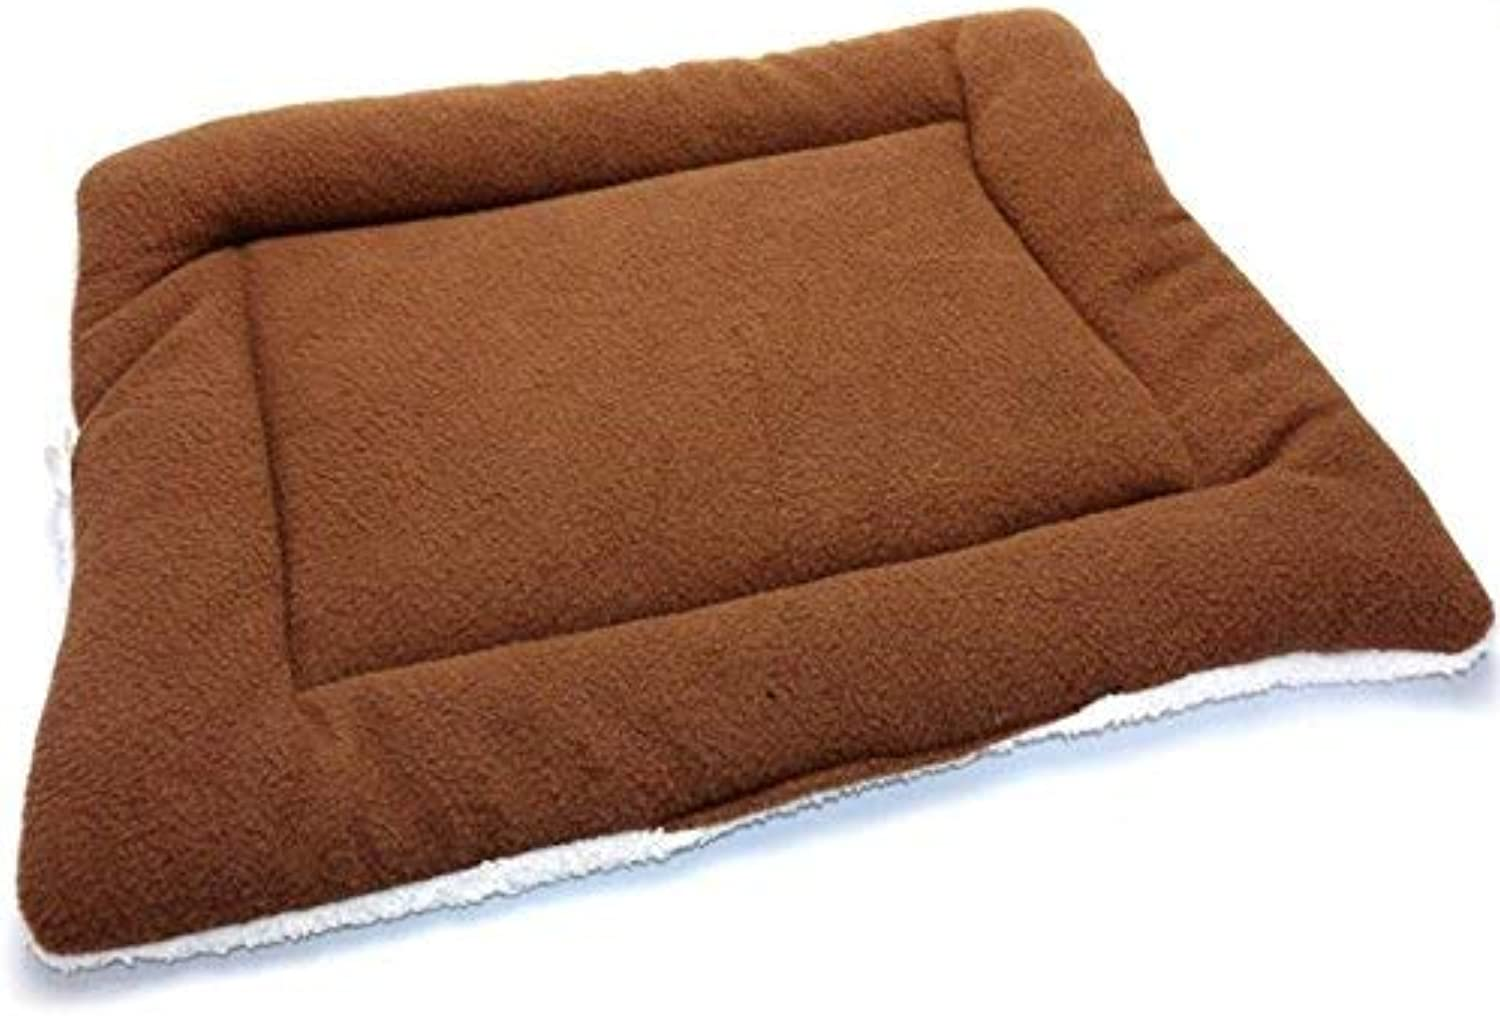 JINGB Pet Supplies Comfortable Pet Pad Air Conditioning Blanket Cat Dog Sleeping Pad Pet Supplies (Brown L) Pet Bed Blanket